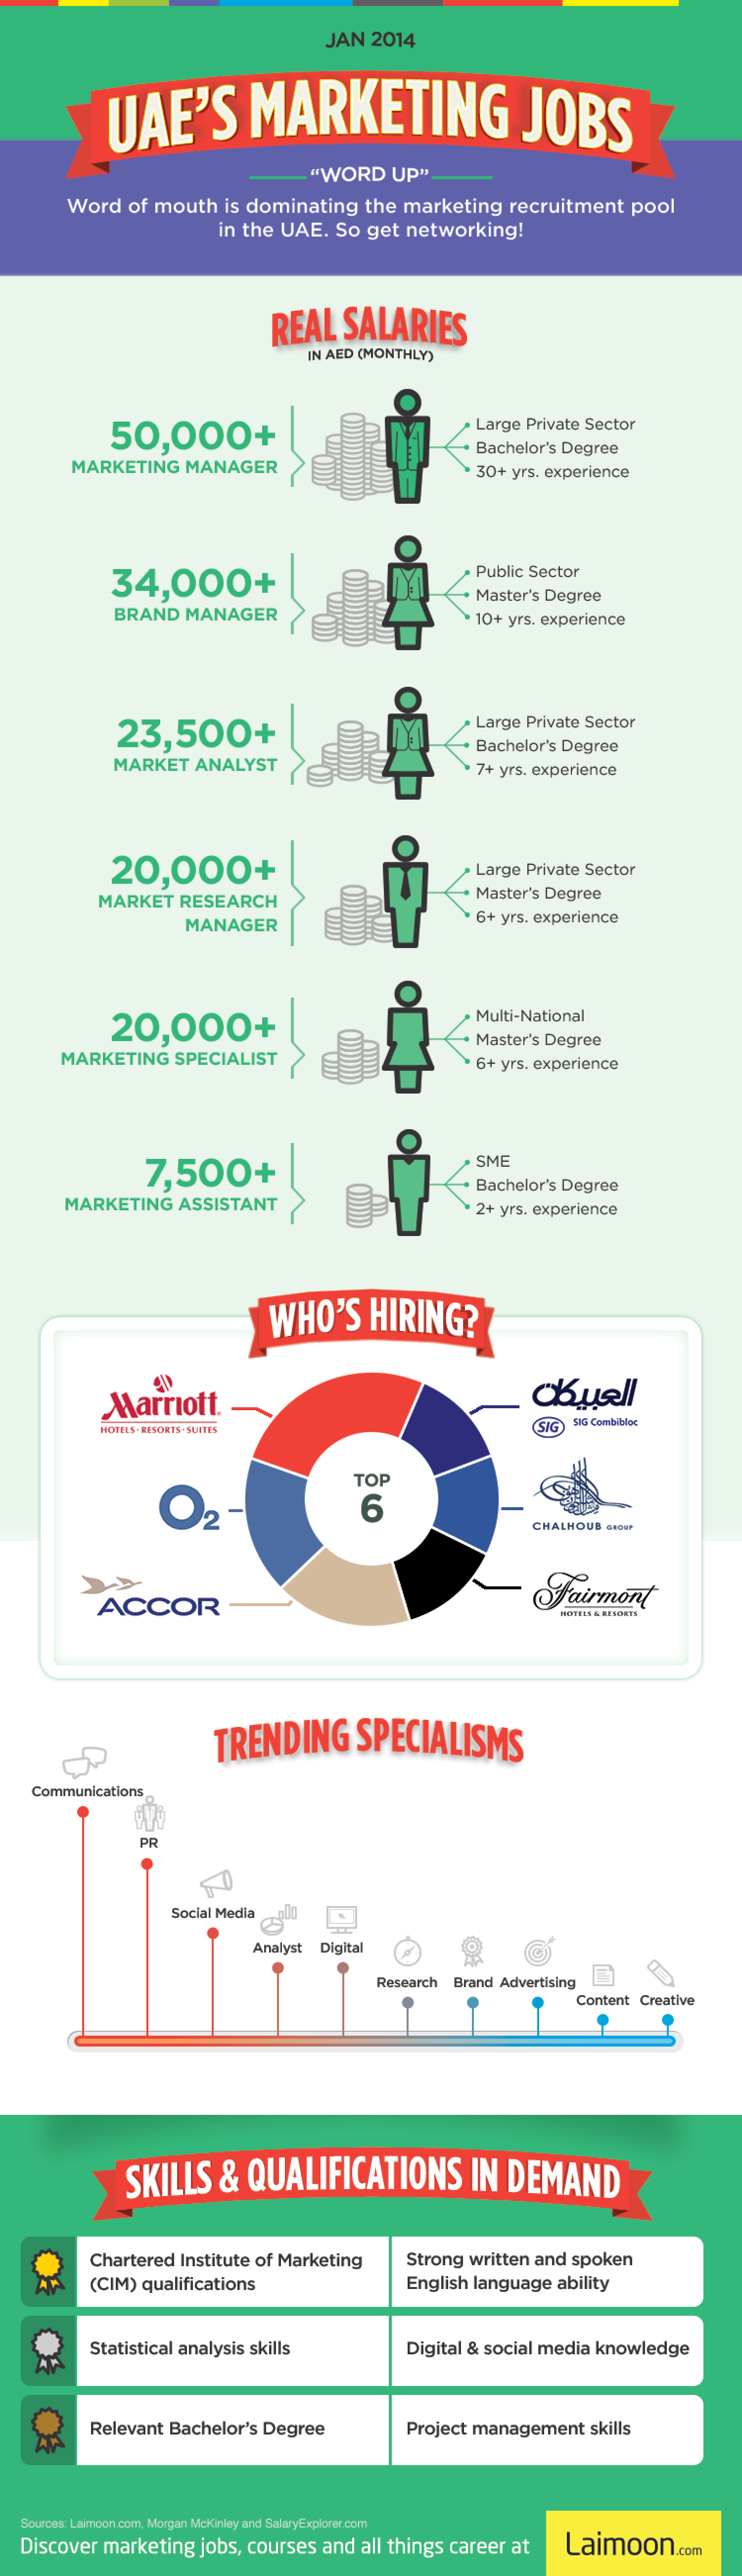 UAE's Marketing Jobs Infographic